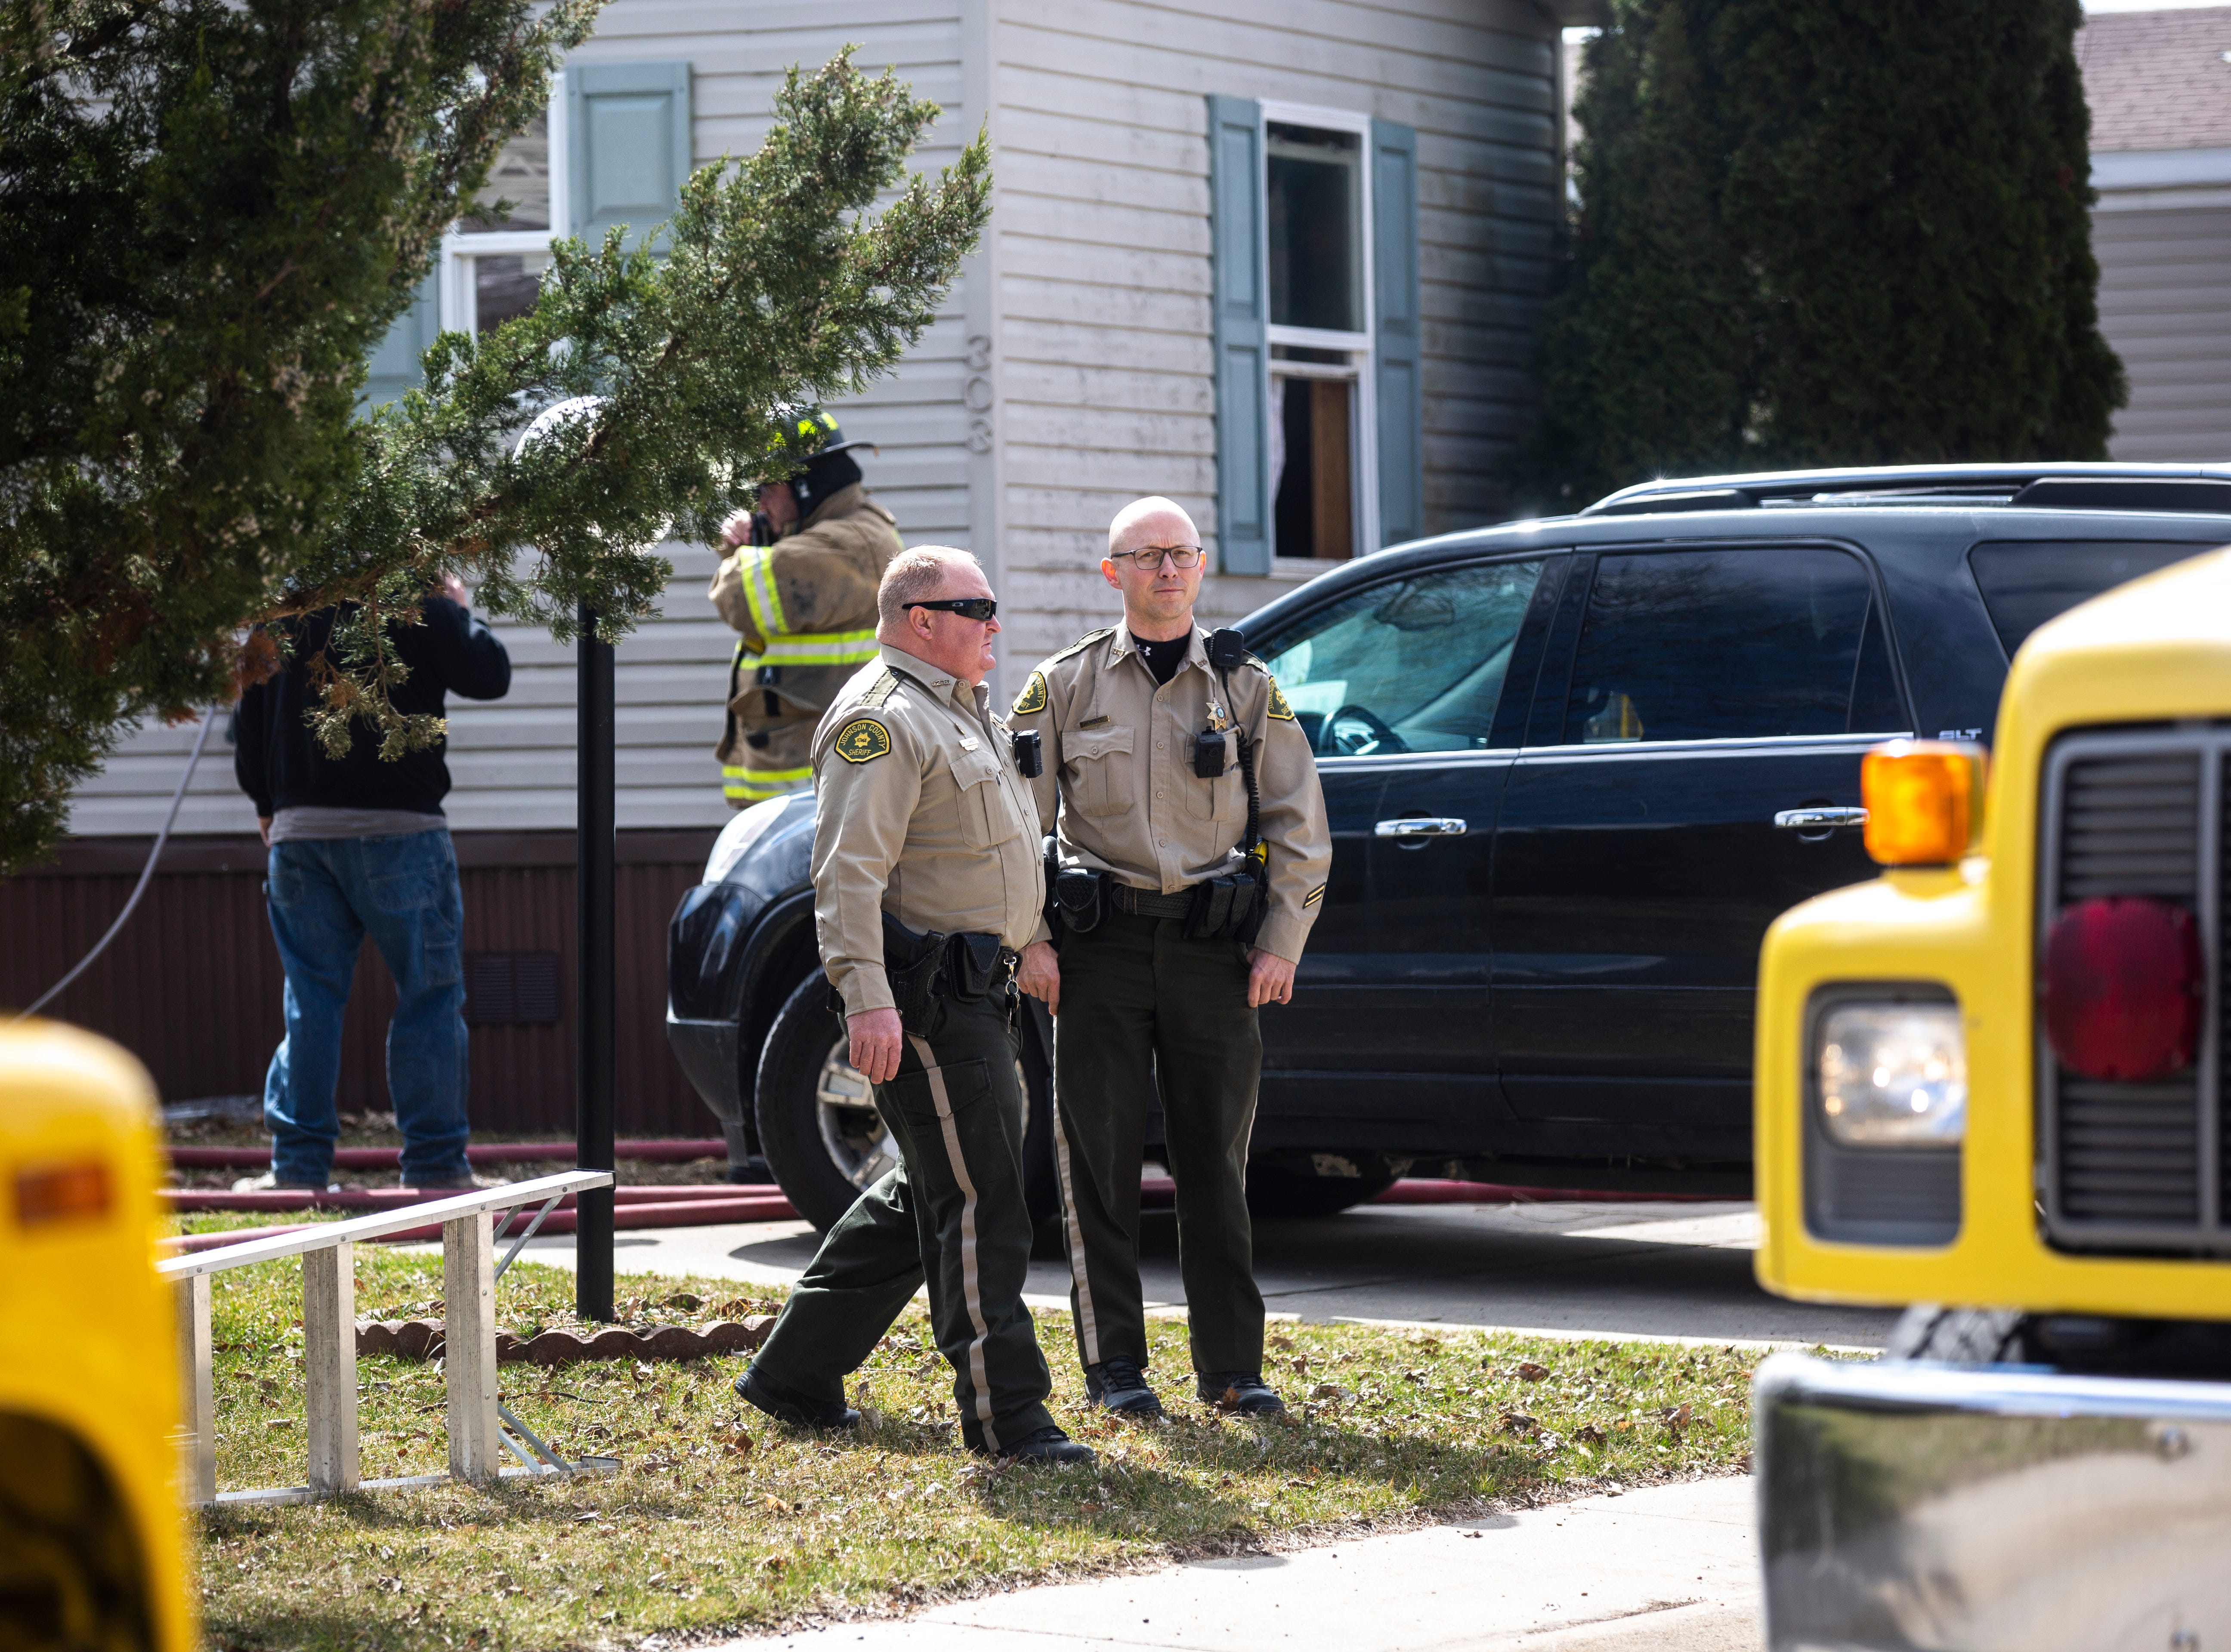 Johnson County sheriffs work with firefighters to respond to a kitchen fire on Tuesday, April 2, 2019, in the 300 block of Mosswood Lane at the Lake Ridge mobile home park in Iowa City, Iowa.